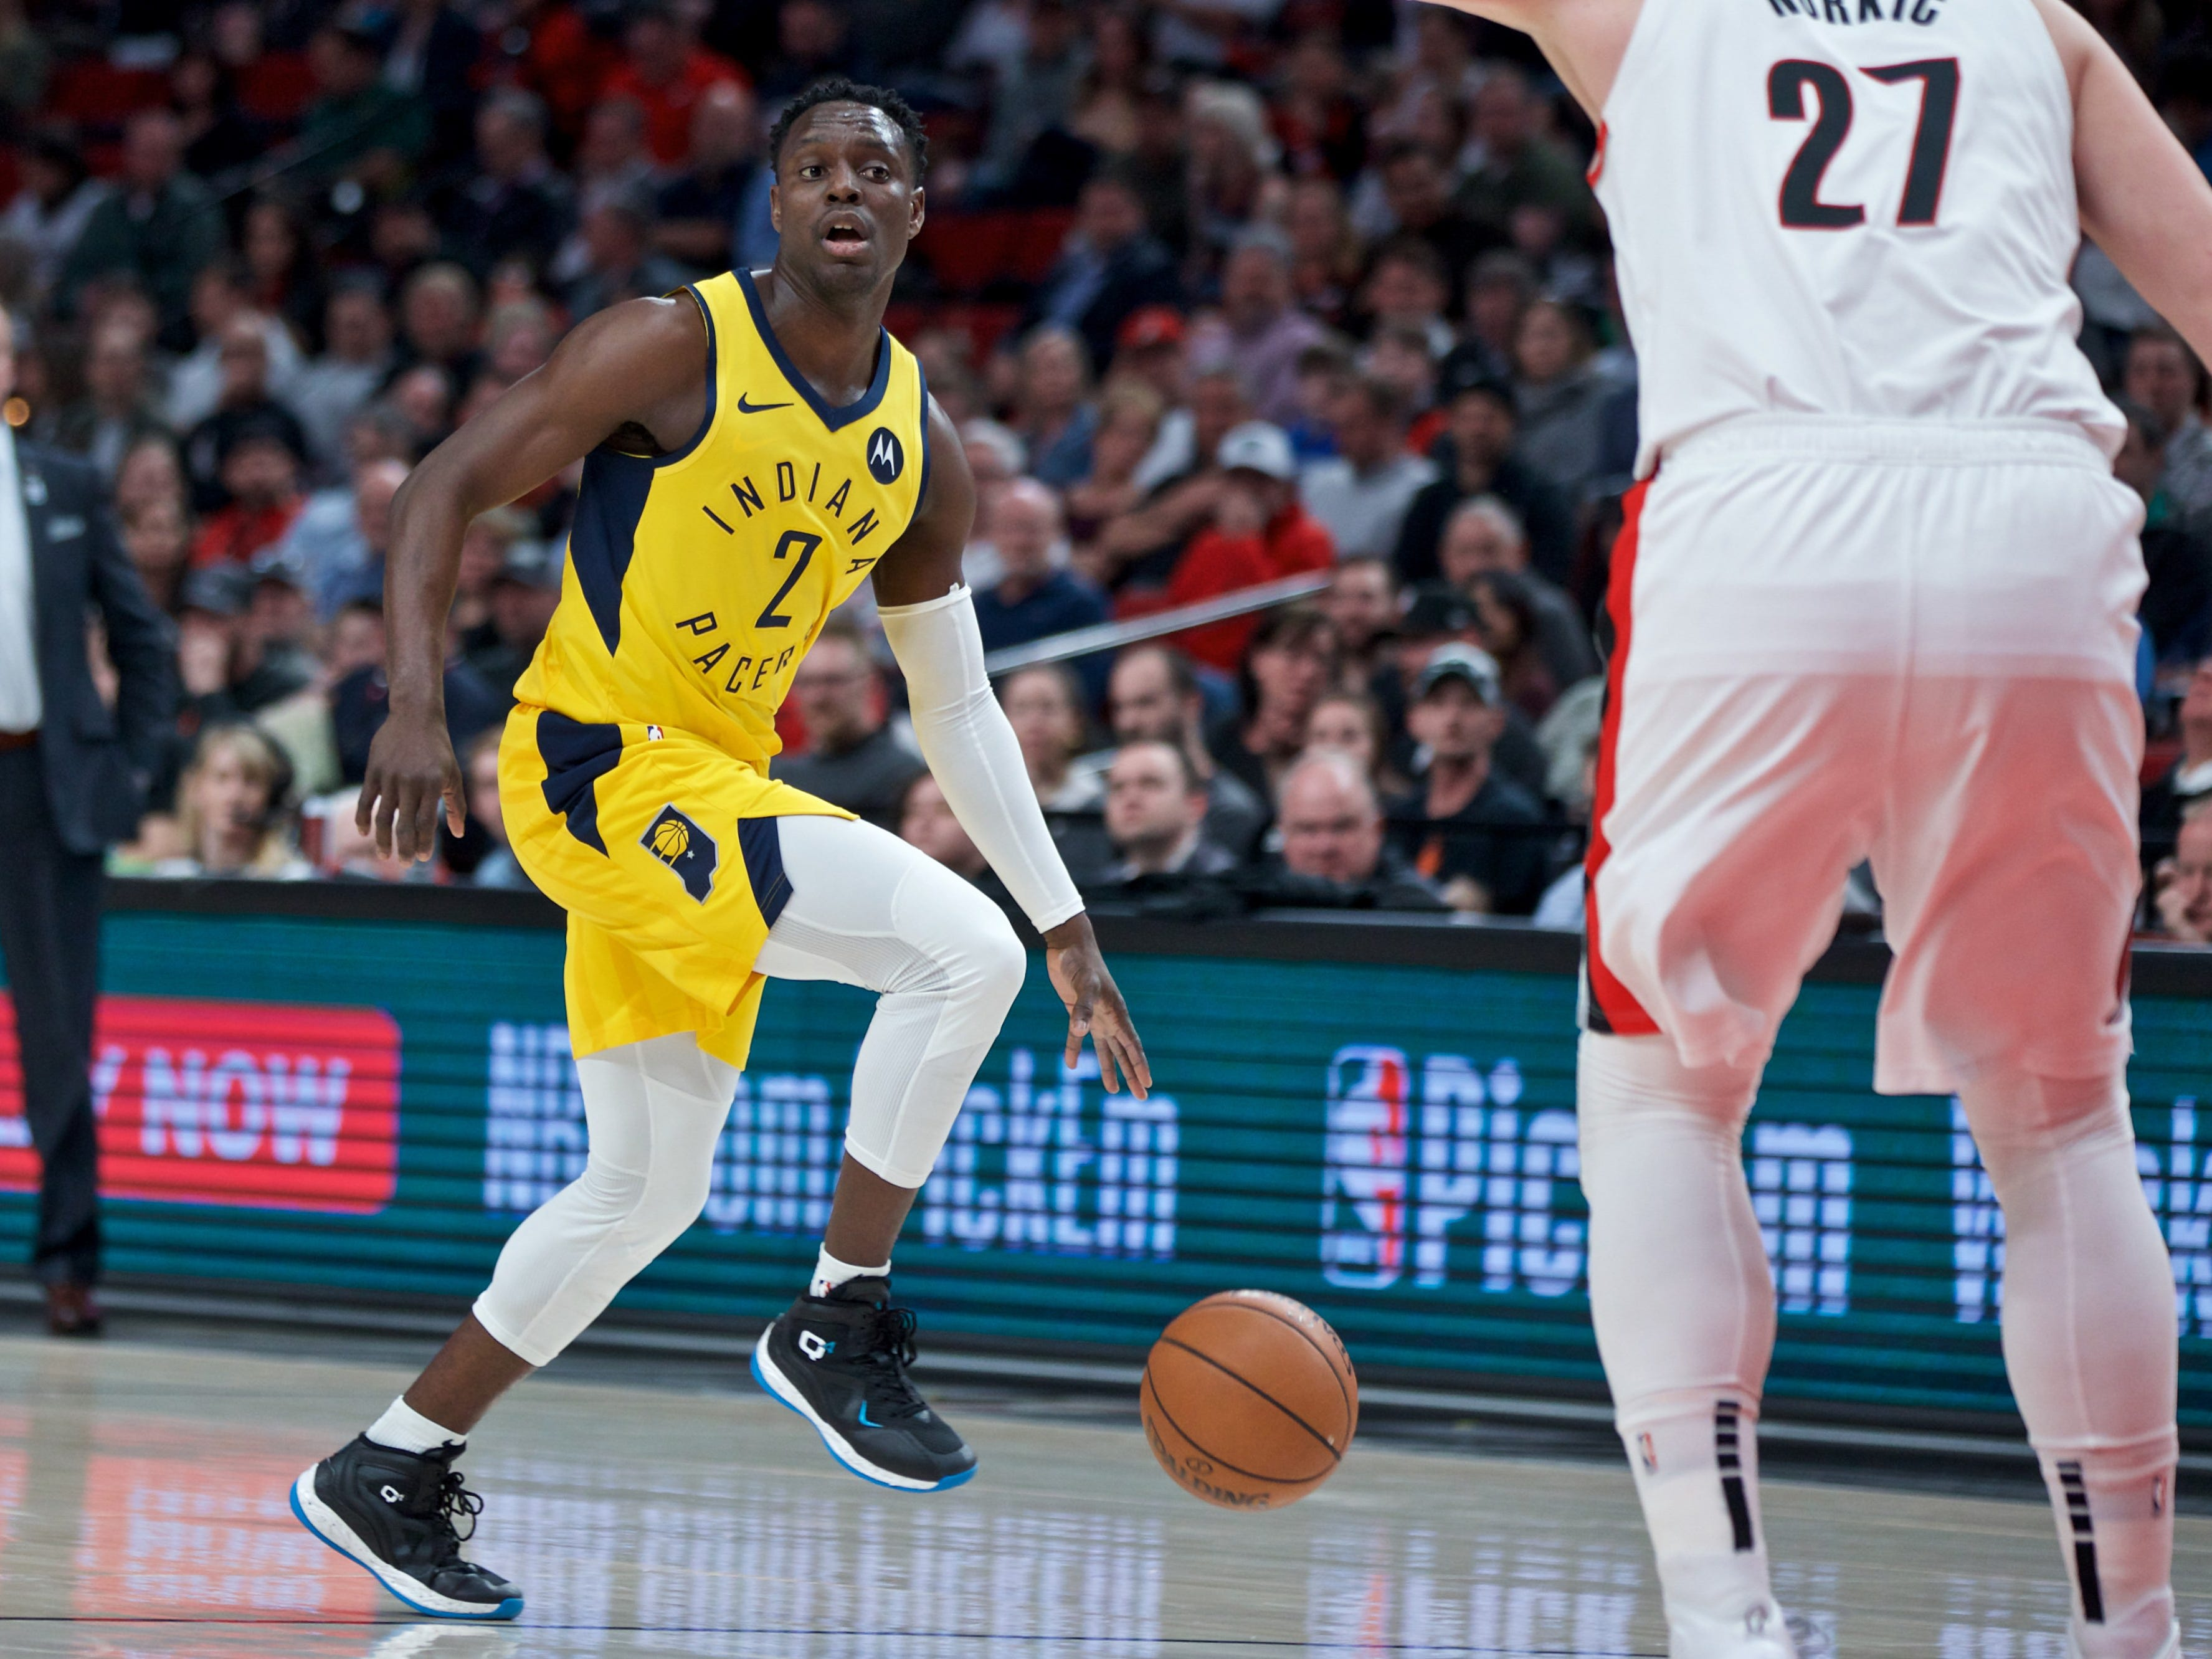 March 18, 2019; Portland, OR, USA; Indiana Pacers guard Darren Collison (2) dribbles the ball against the Portland Trail Blazers during the first quarter at the Moda Center.